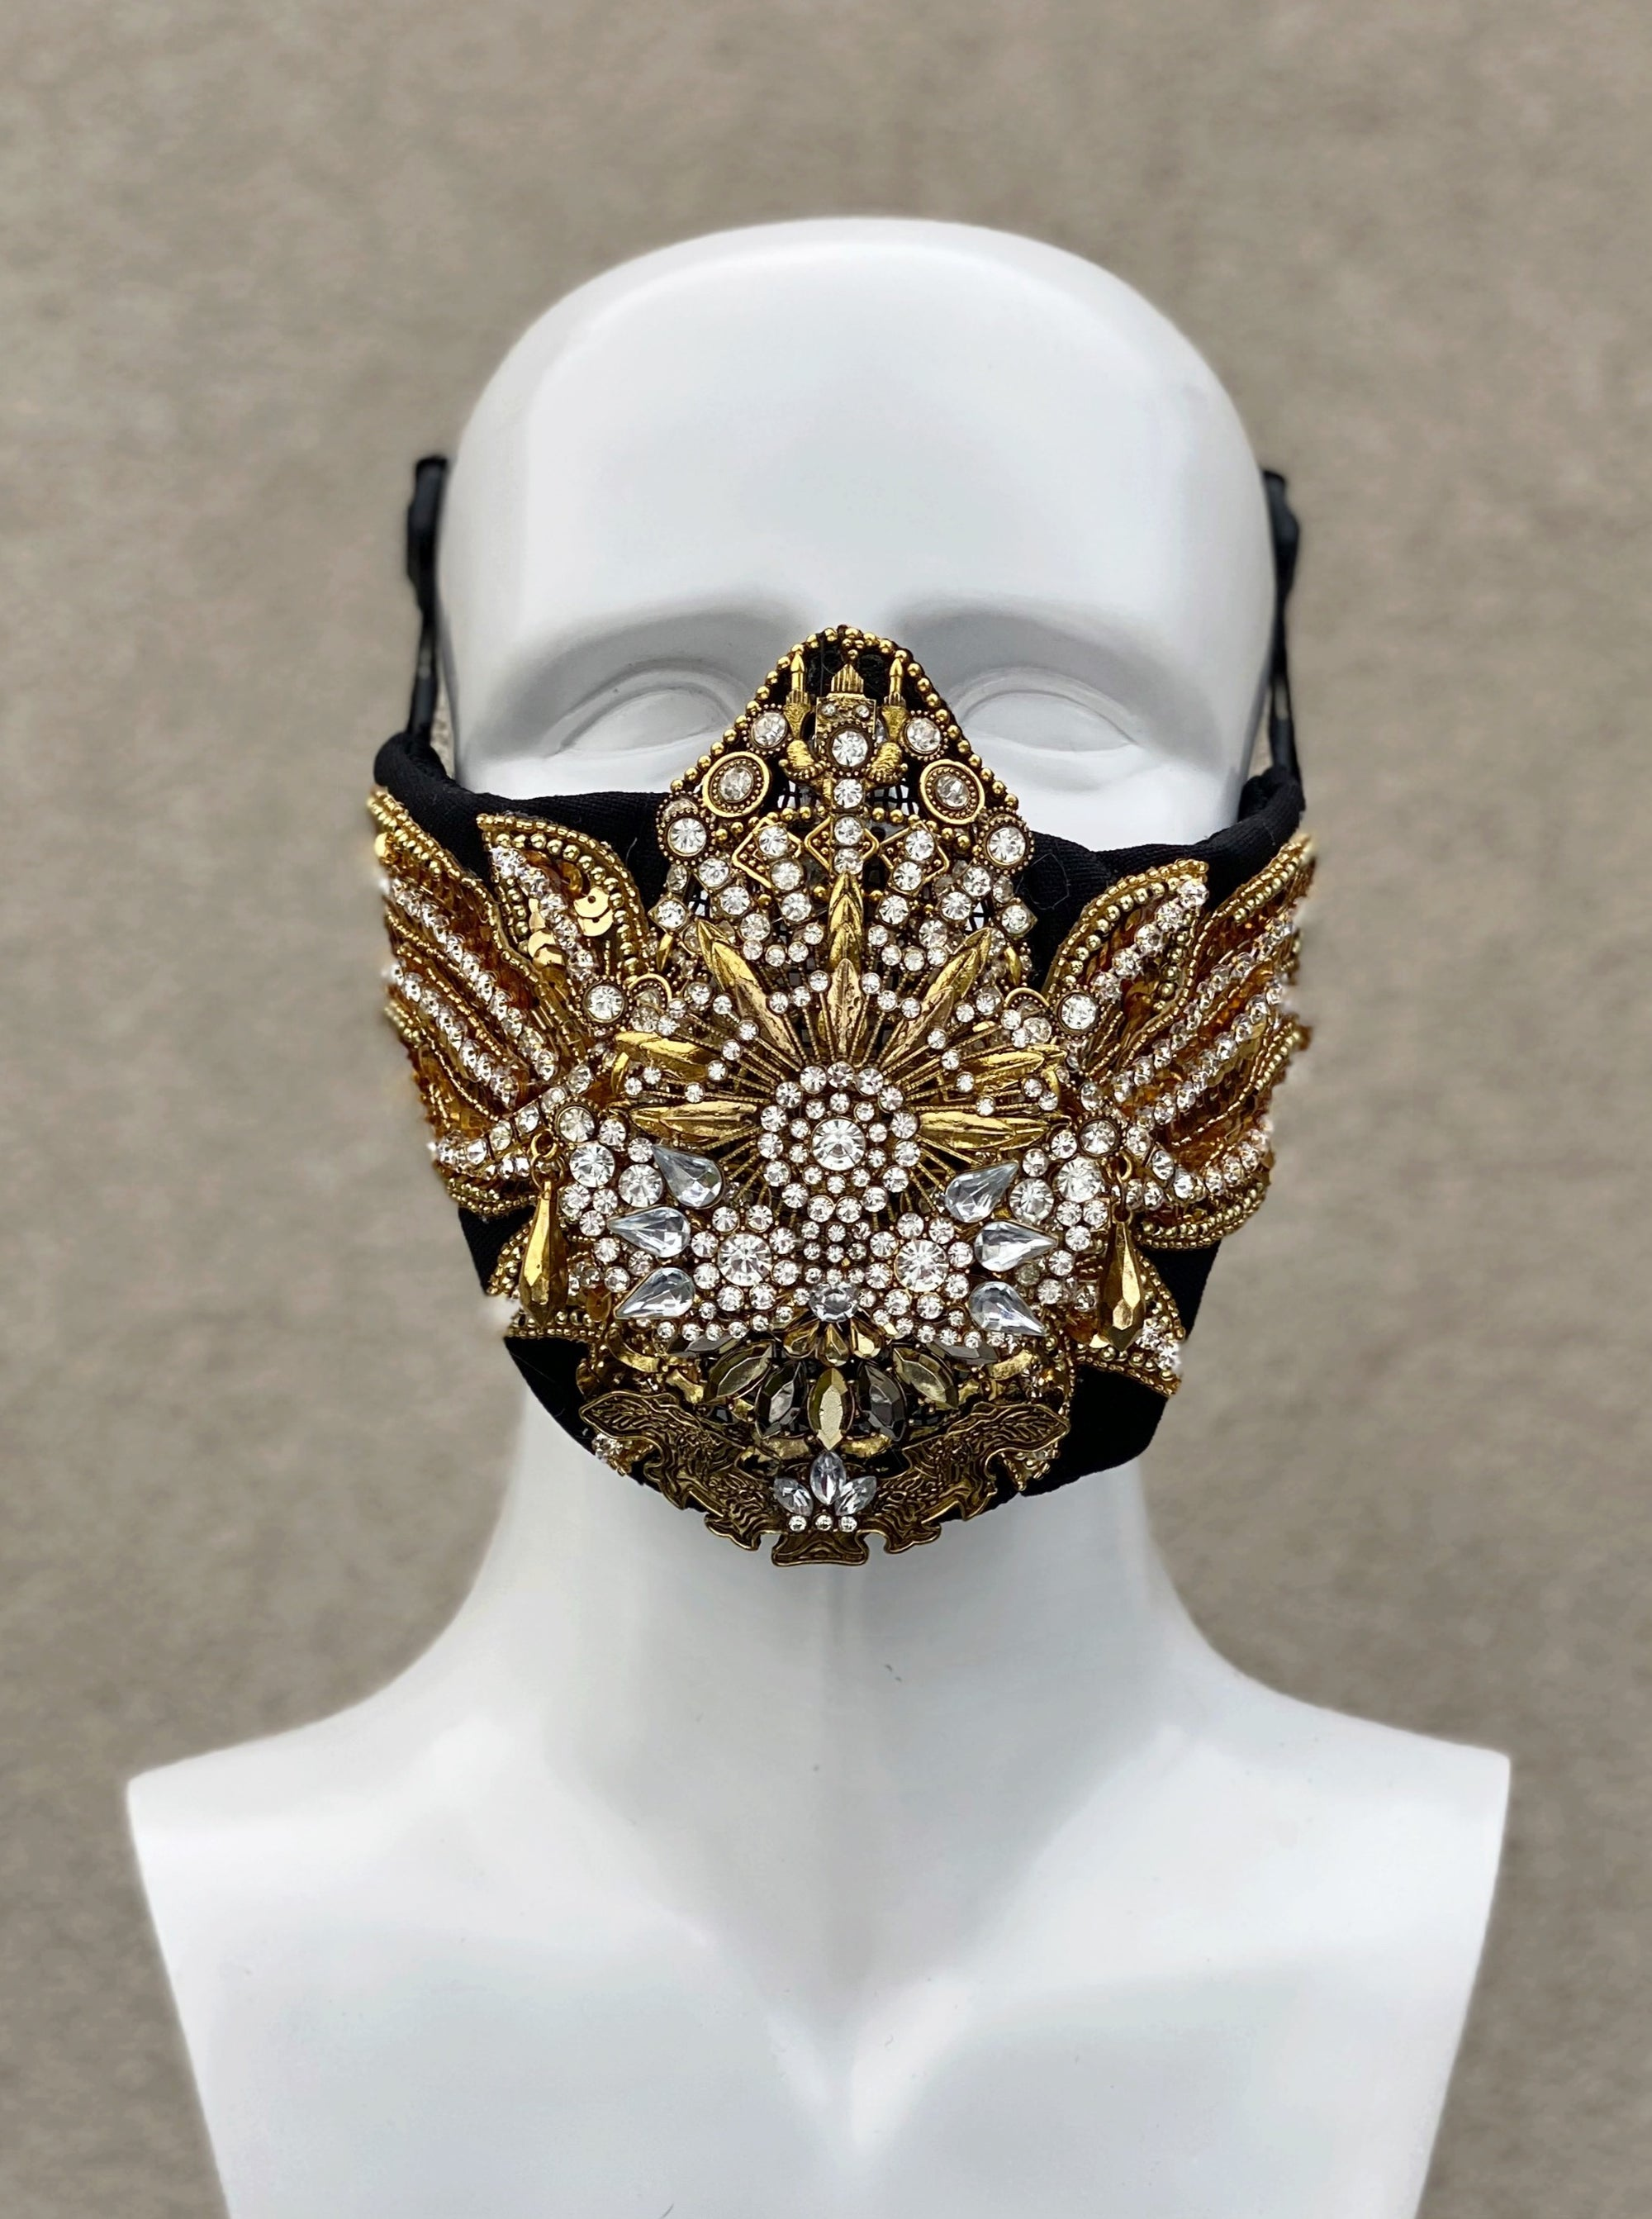 ORION face mask